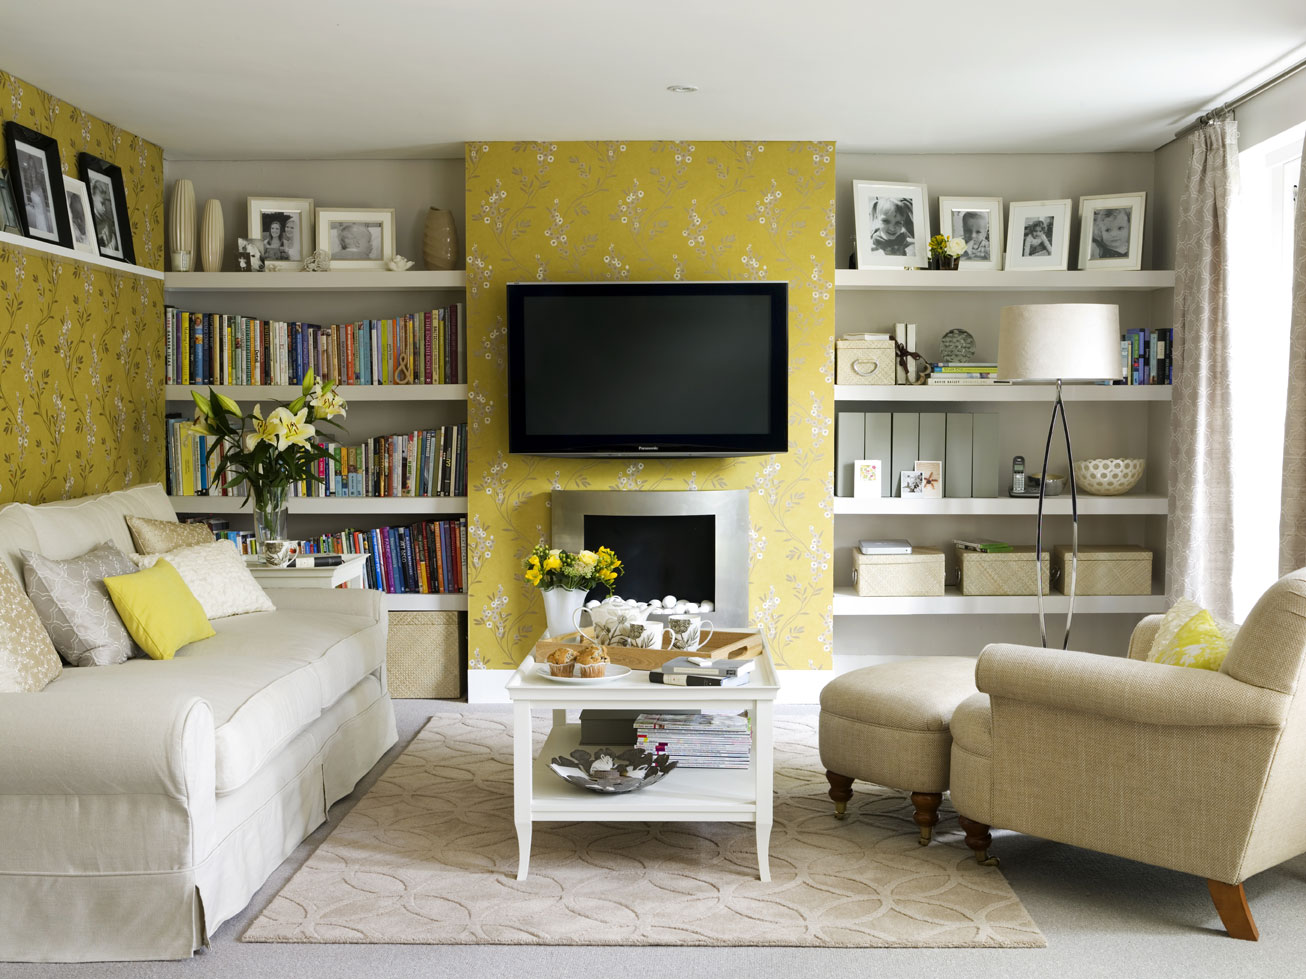 Living Room Pictures For The Living Room yellow room interior inspiration 55 rooms for your viewing pleasure